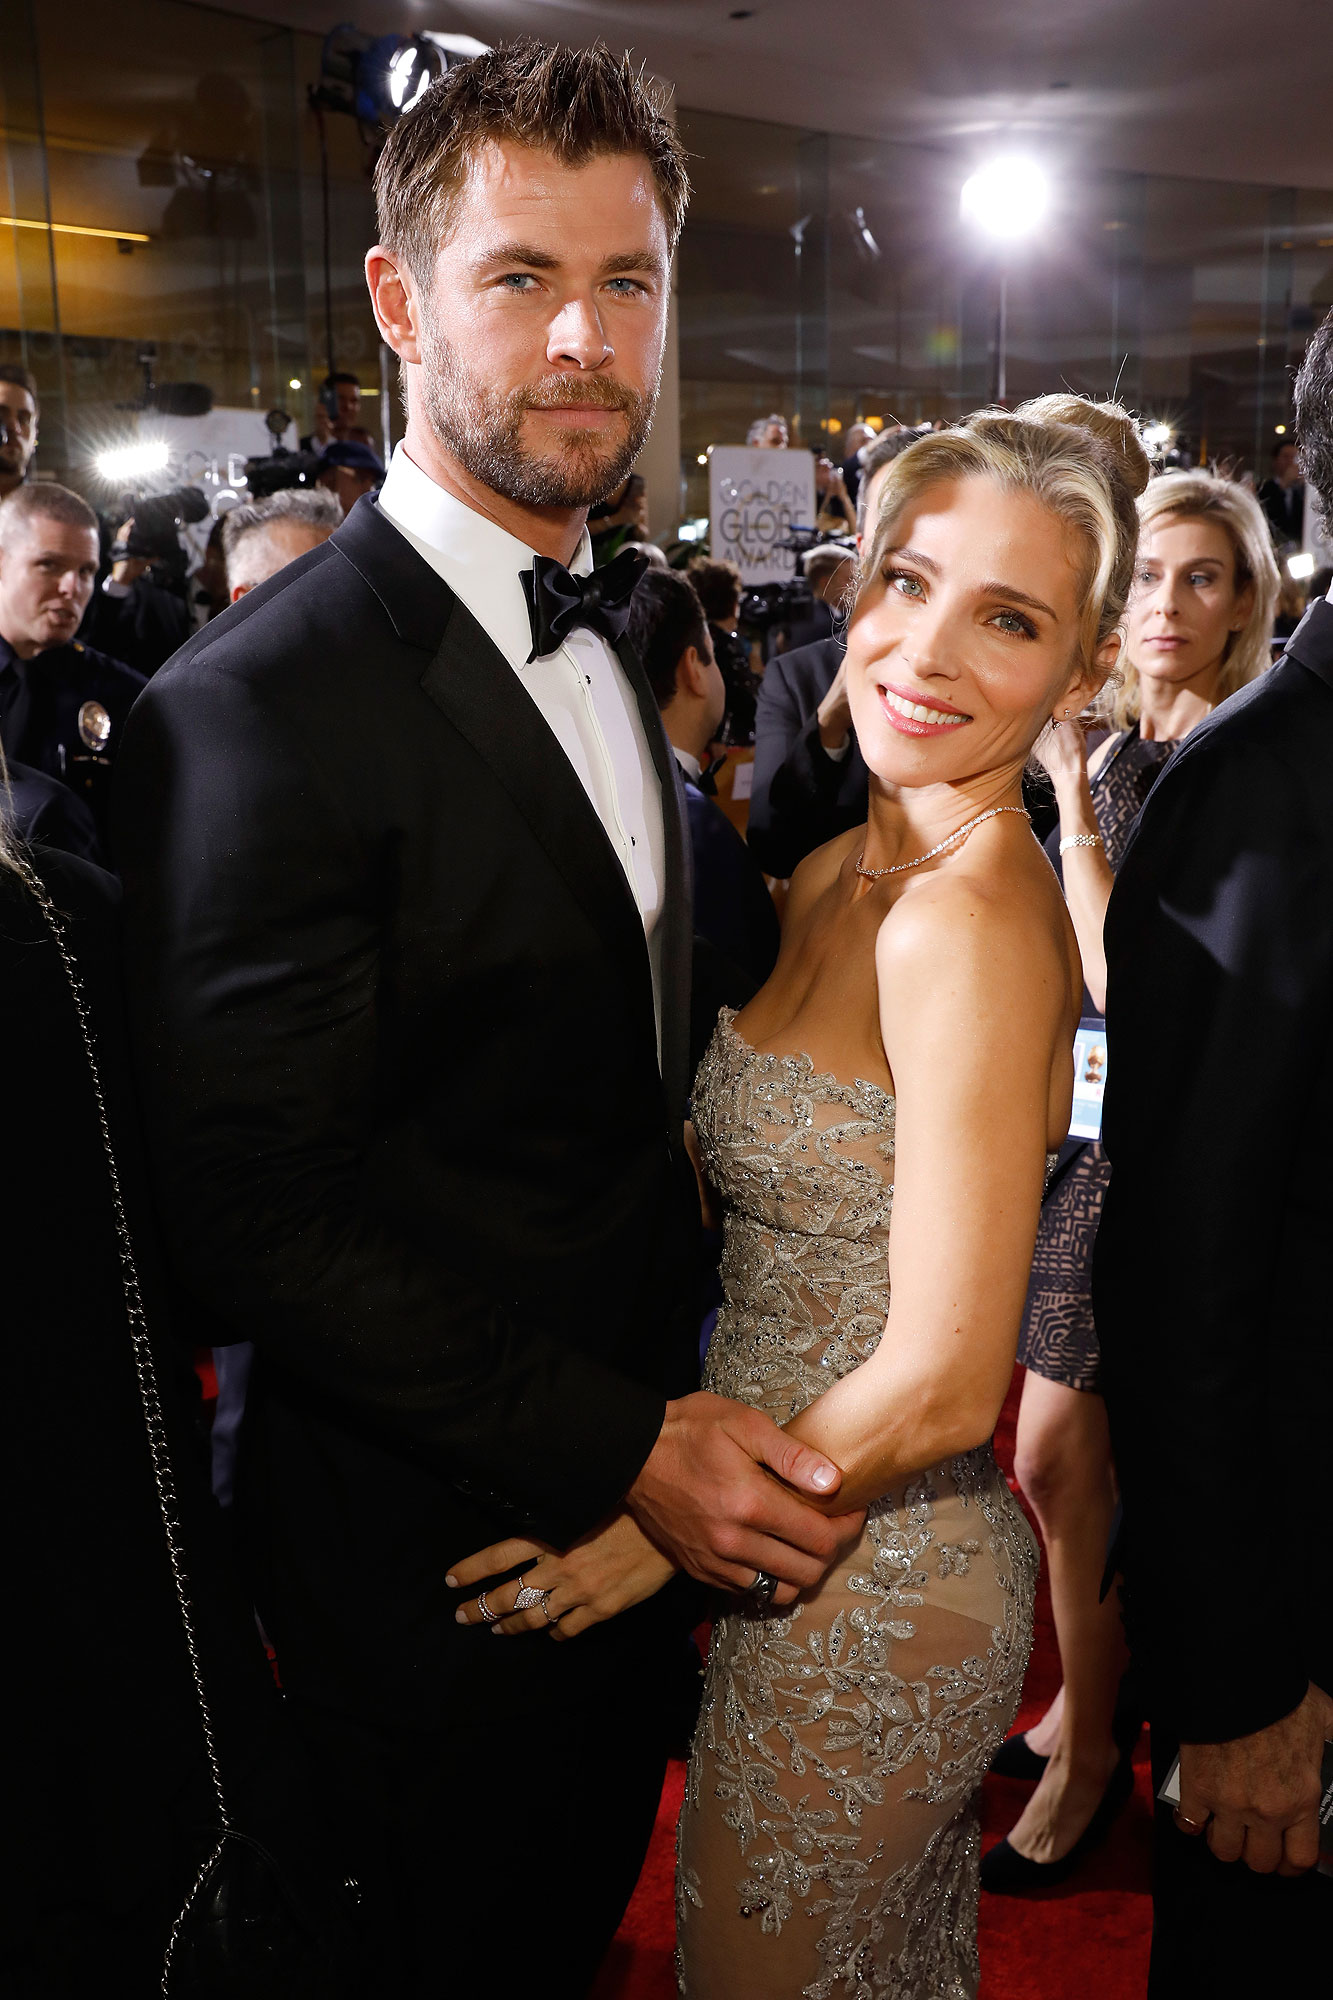 CHRIS HEMSWORTH ON ELSA PATAKY